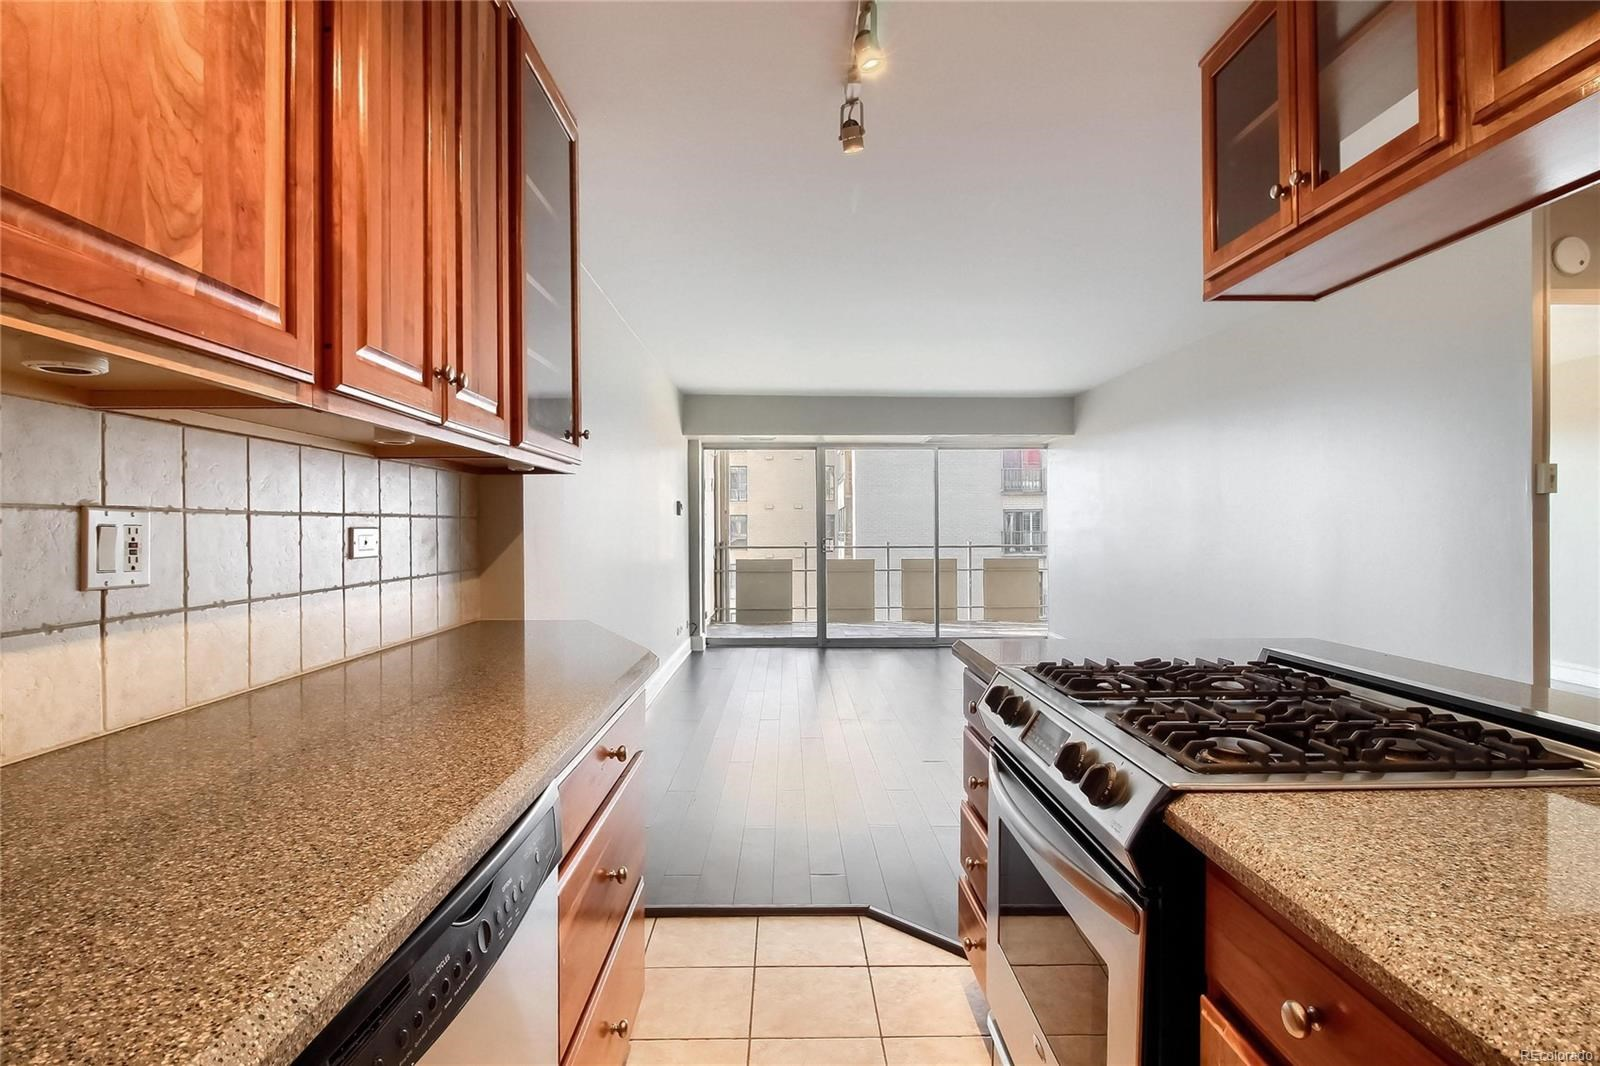 MLS# 5045889 - 18 - 800 N Washington Street #905, Denver, CO 80203